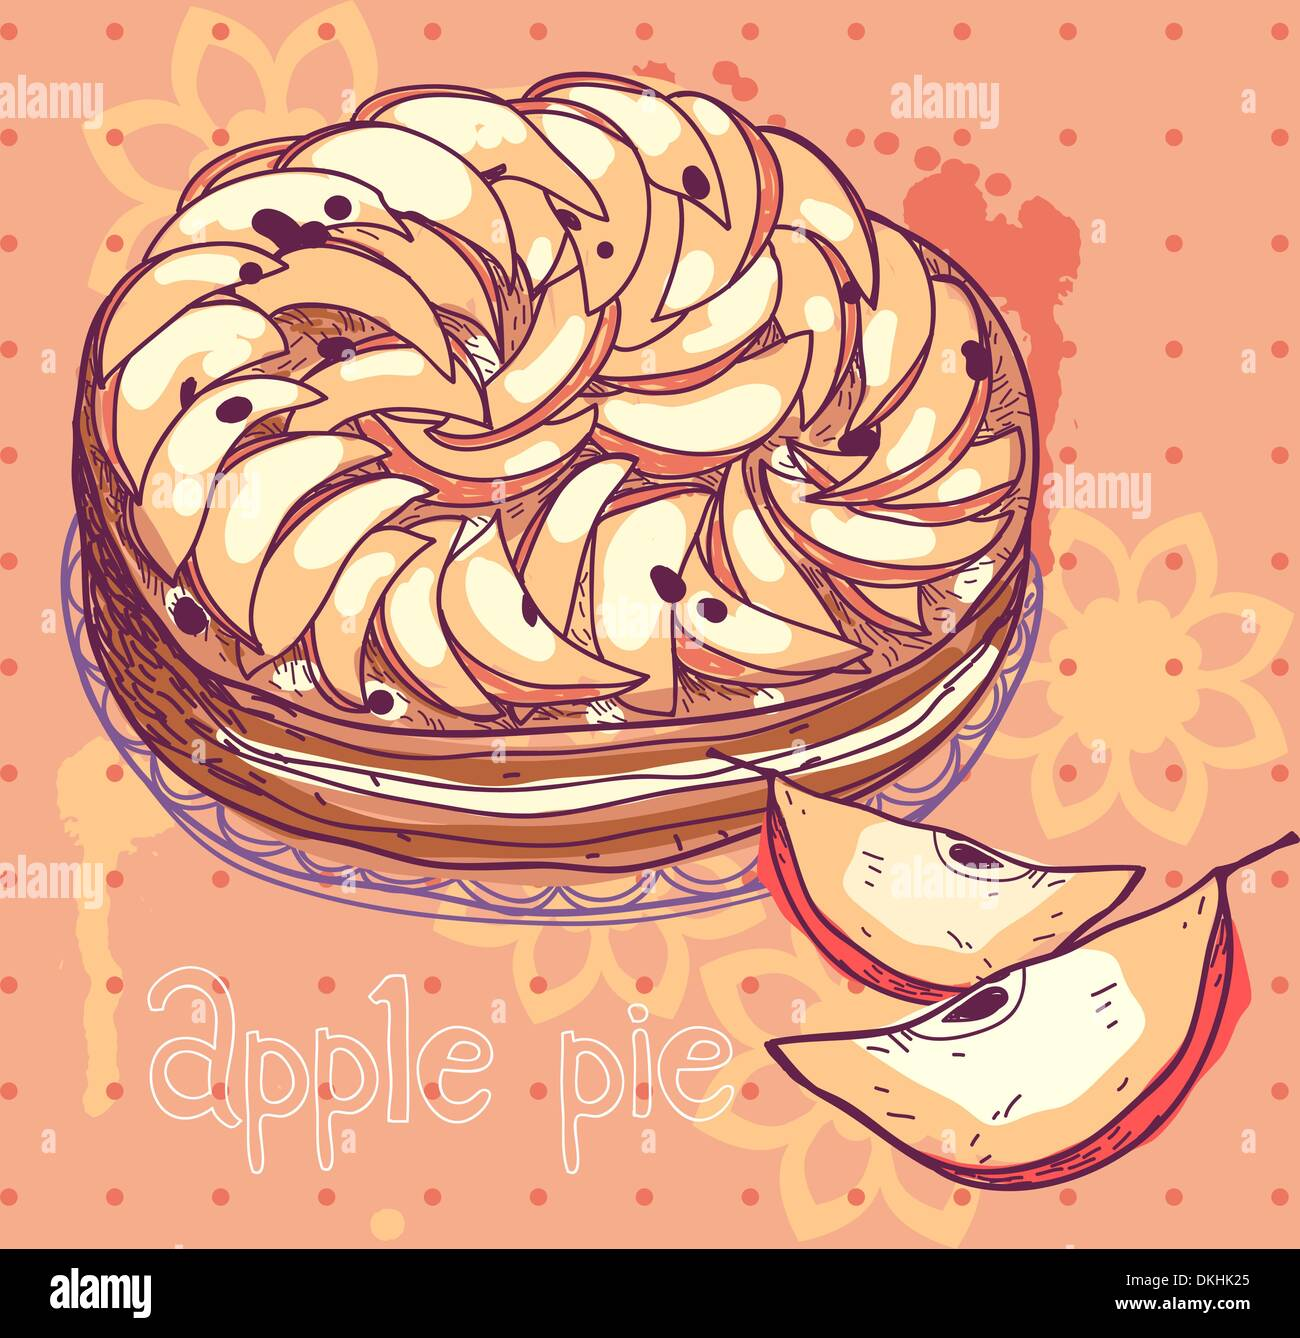 vector illustration of an apple pie - Stock Image